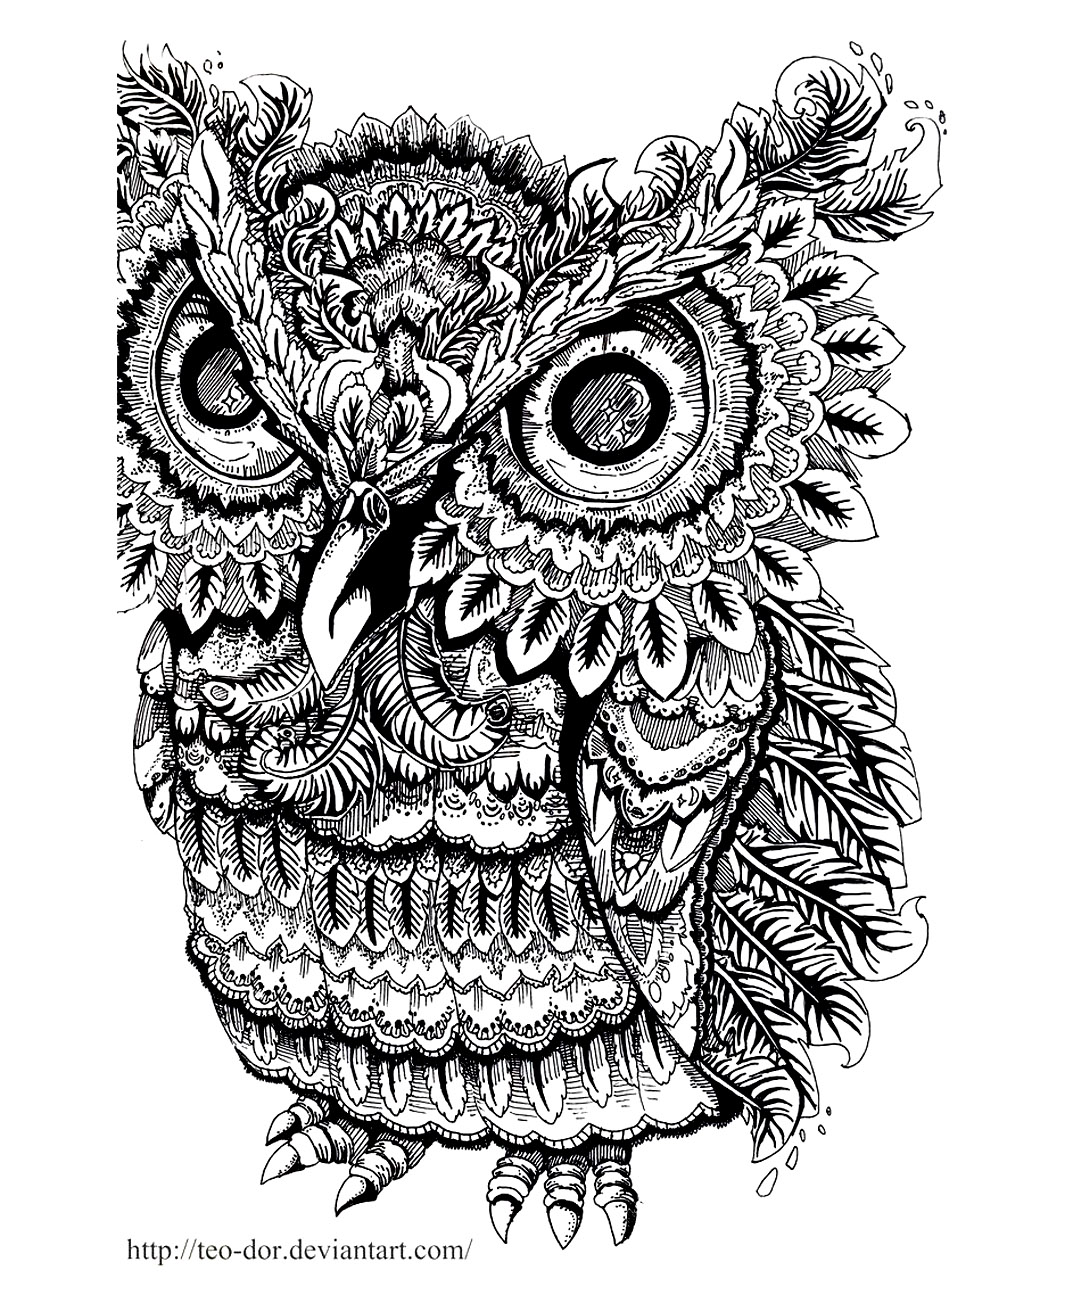 owl big eyes animals coloring pages for adults justcolor. Black Bedroom Furniture Sets. Home Design Ideas